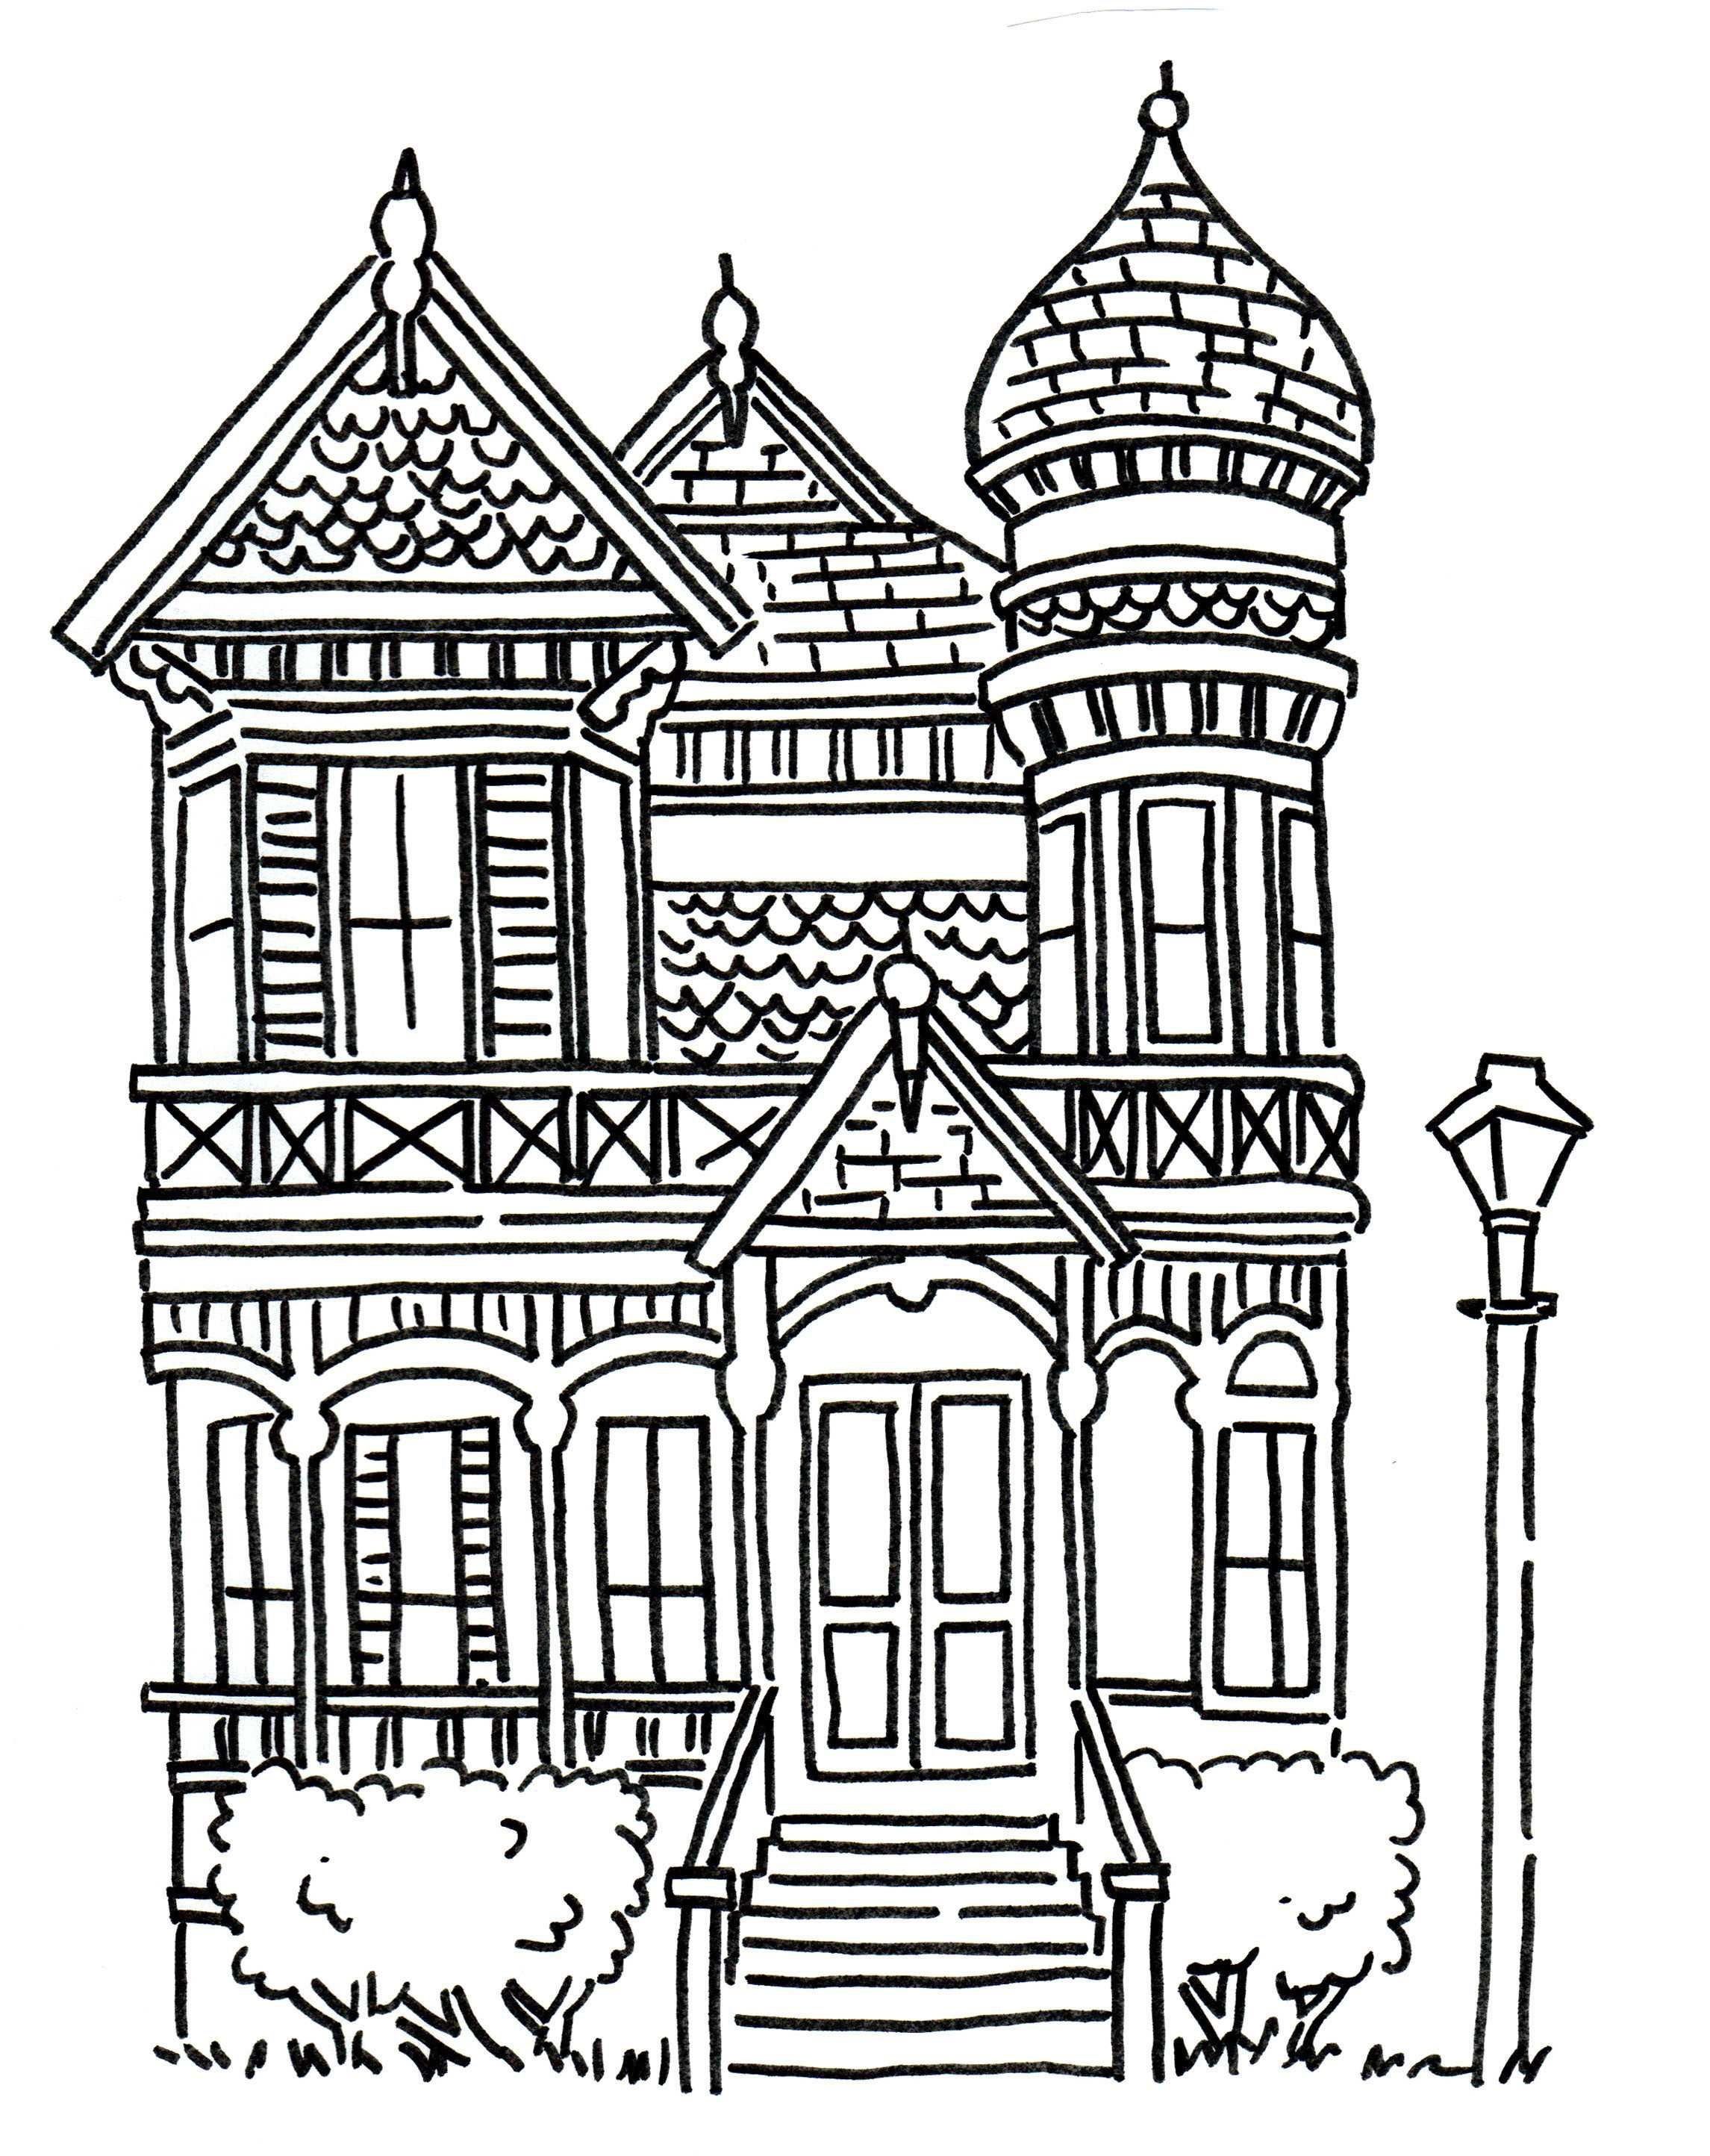 Halloween graveyard colouring page Halloween coloring